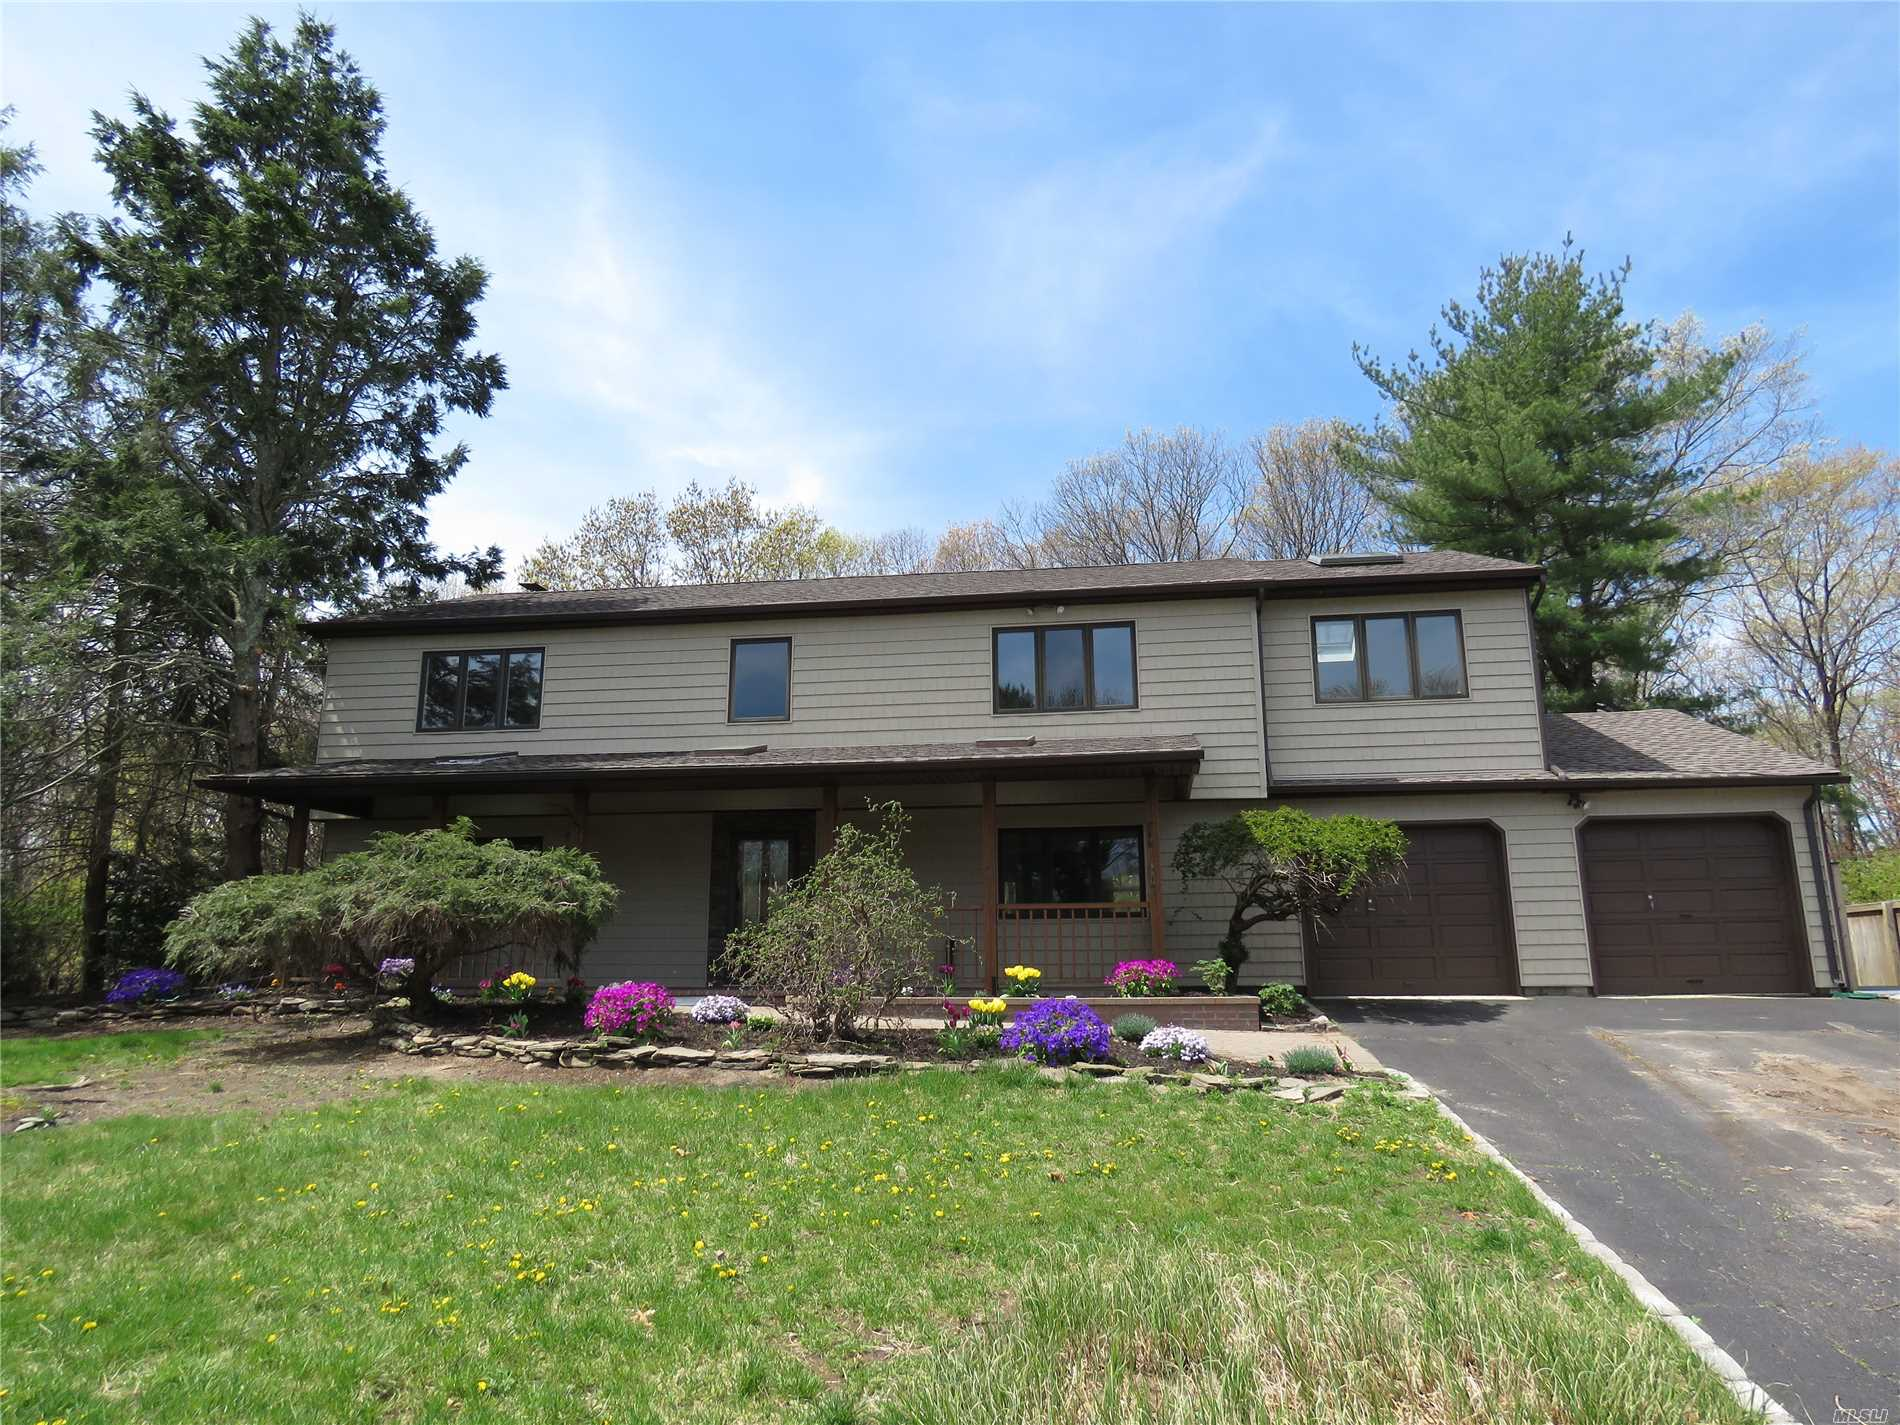 Spacious 4/5 Bedroom Expanded Colonial located in Desirable South Setauket Park. Three Village SD. Spacious Eat-n-Kitchen w/ Granite Island and Countertops, Custom Wood Cabinetry and Wood Flooring. Formal Dining Room. Den with Fireplace. Master Bedroom & Master Bath With A Sitting Room or 5th Bdrm w/ Balcony